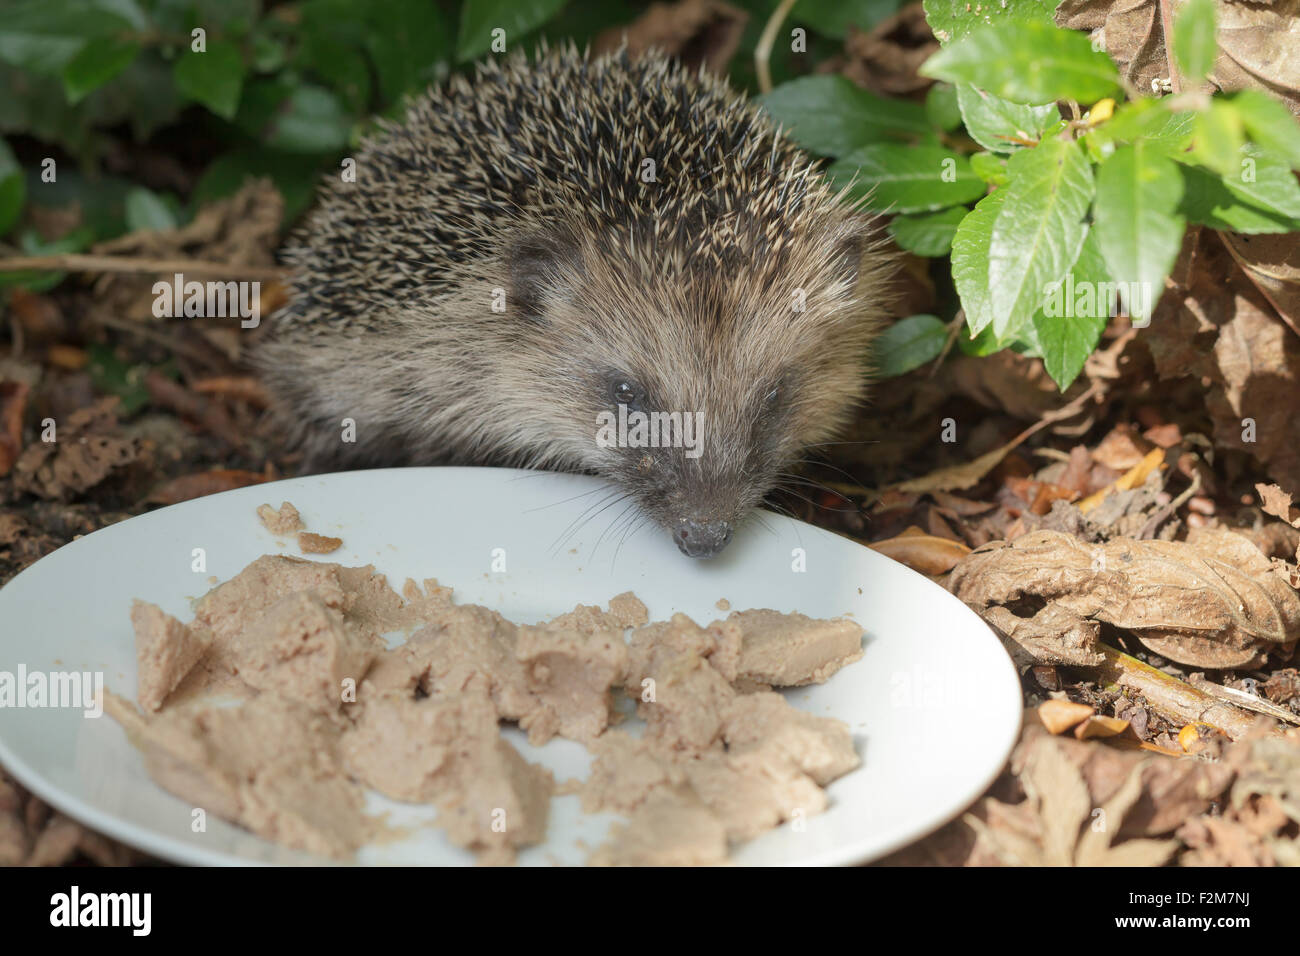 Hedgehog eating cat food off a plate in a garden - Stock Image